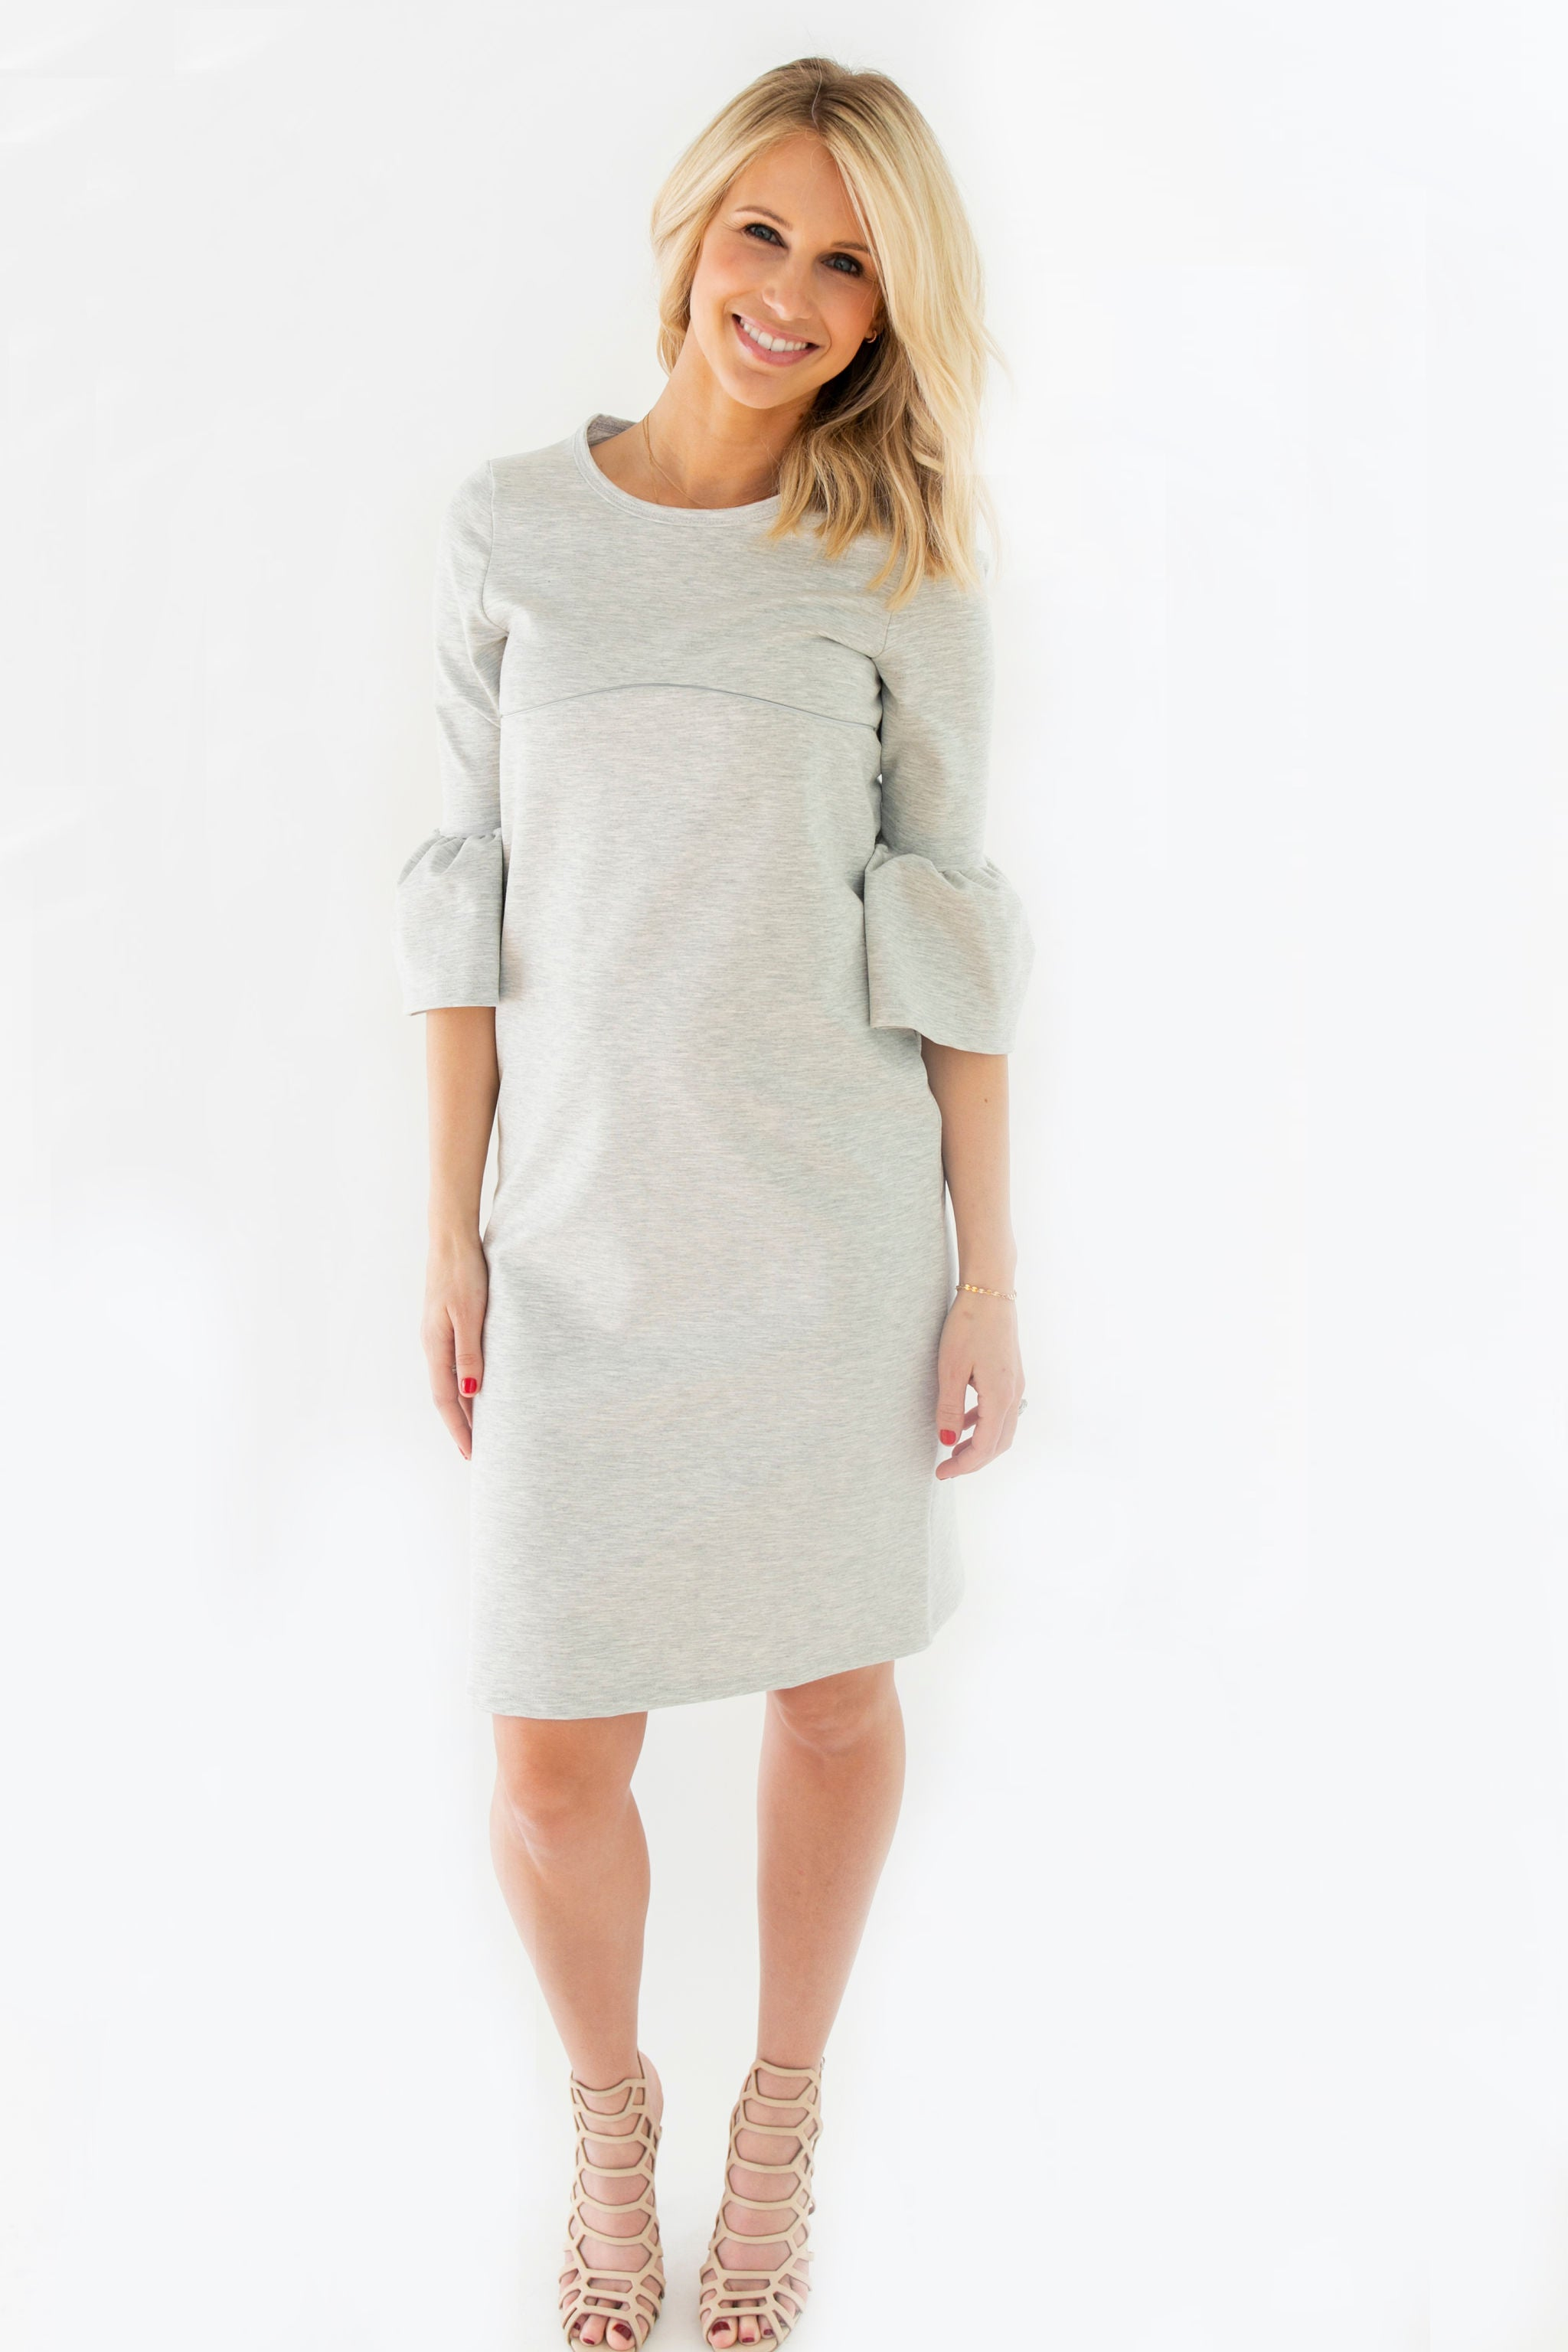 Grey - Bell Sleeve Nursing Dress